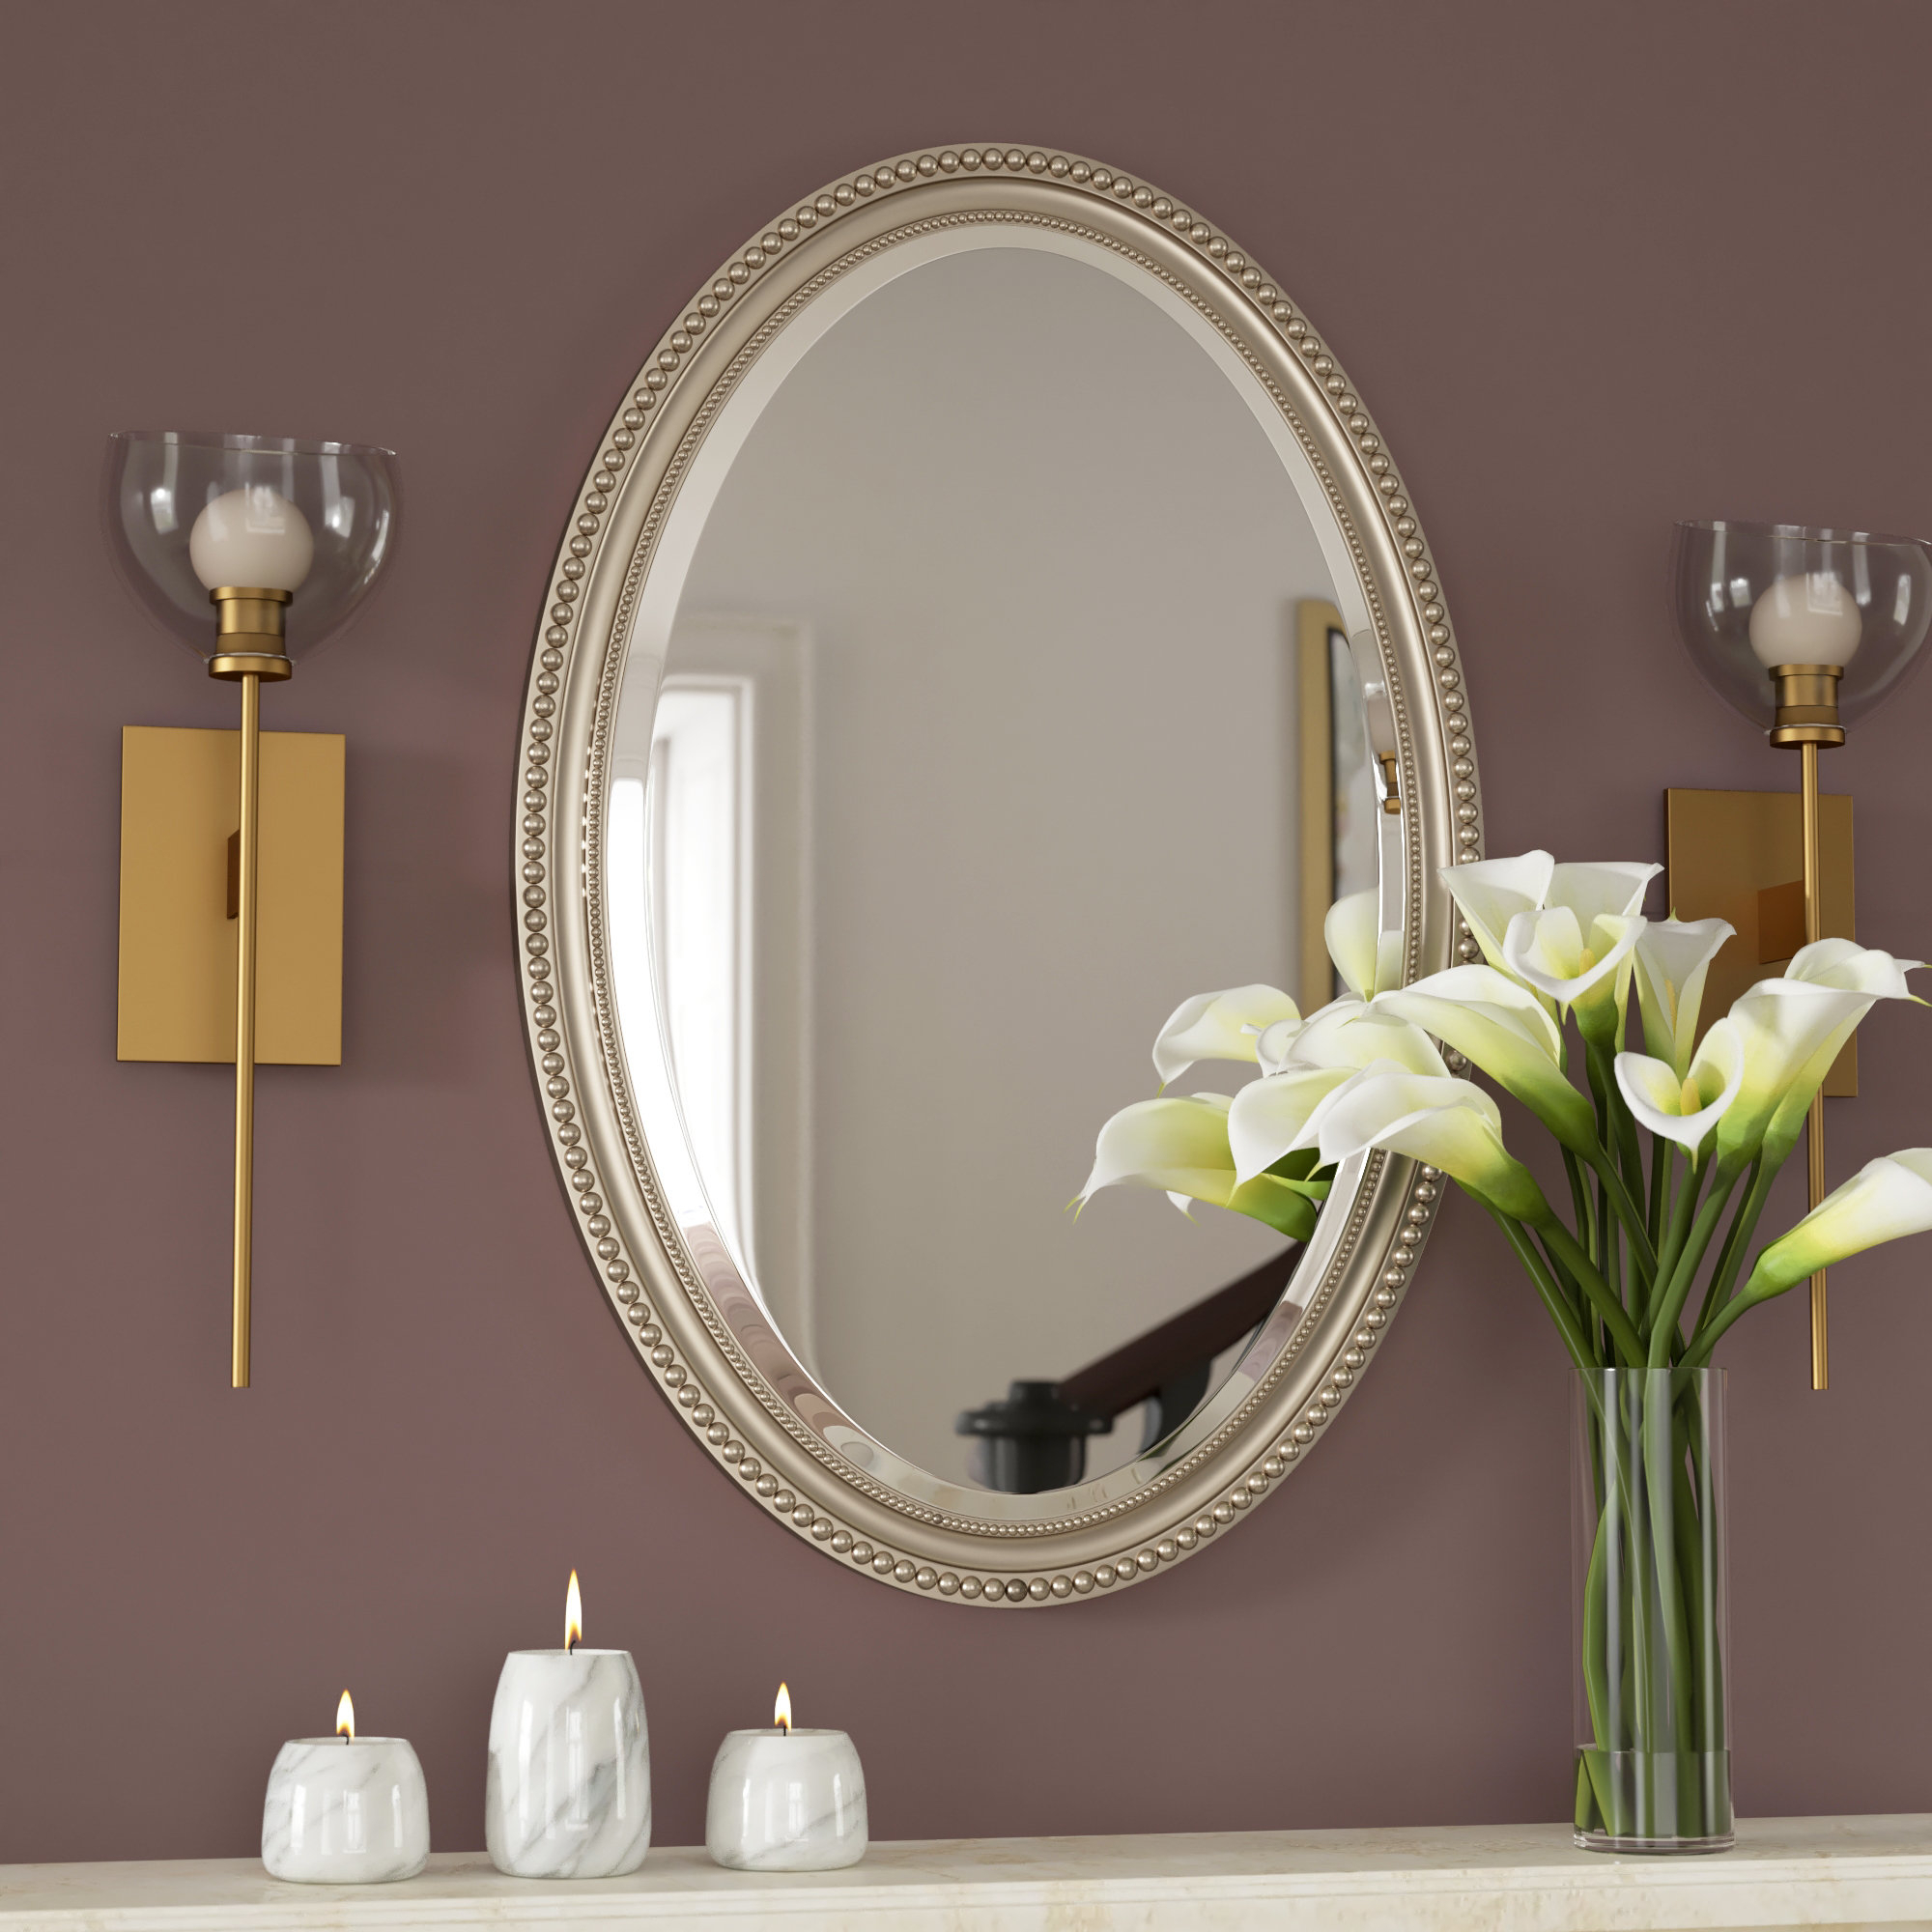 Rosdorf Park Oval Metallic Accent Mirror & Reviews | Wayfair With Regard To Oval Metallic Accent Mirrors (View 1 of 20)